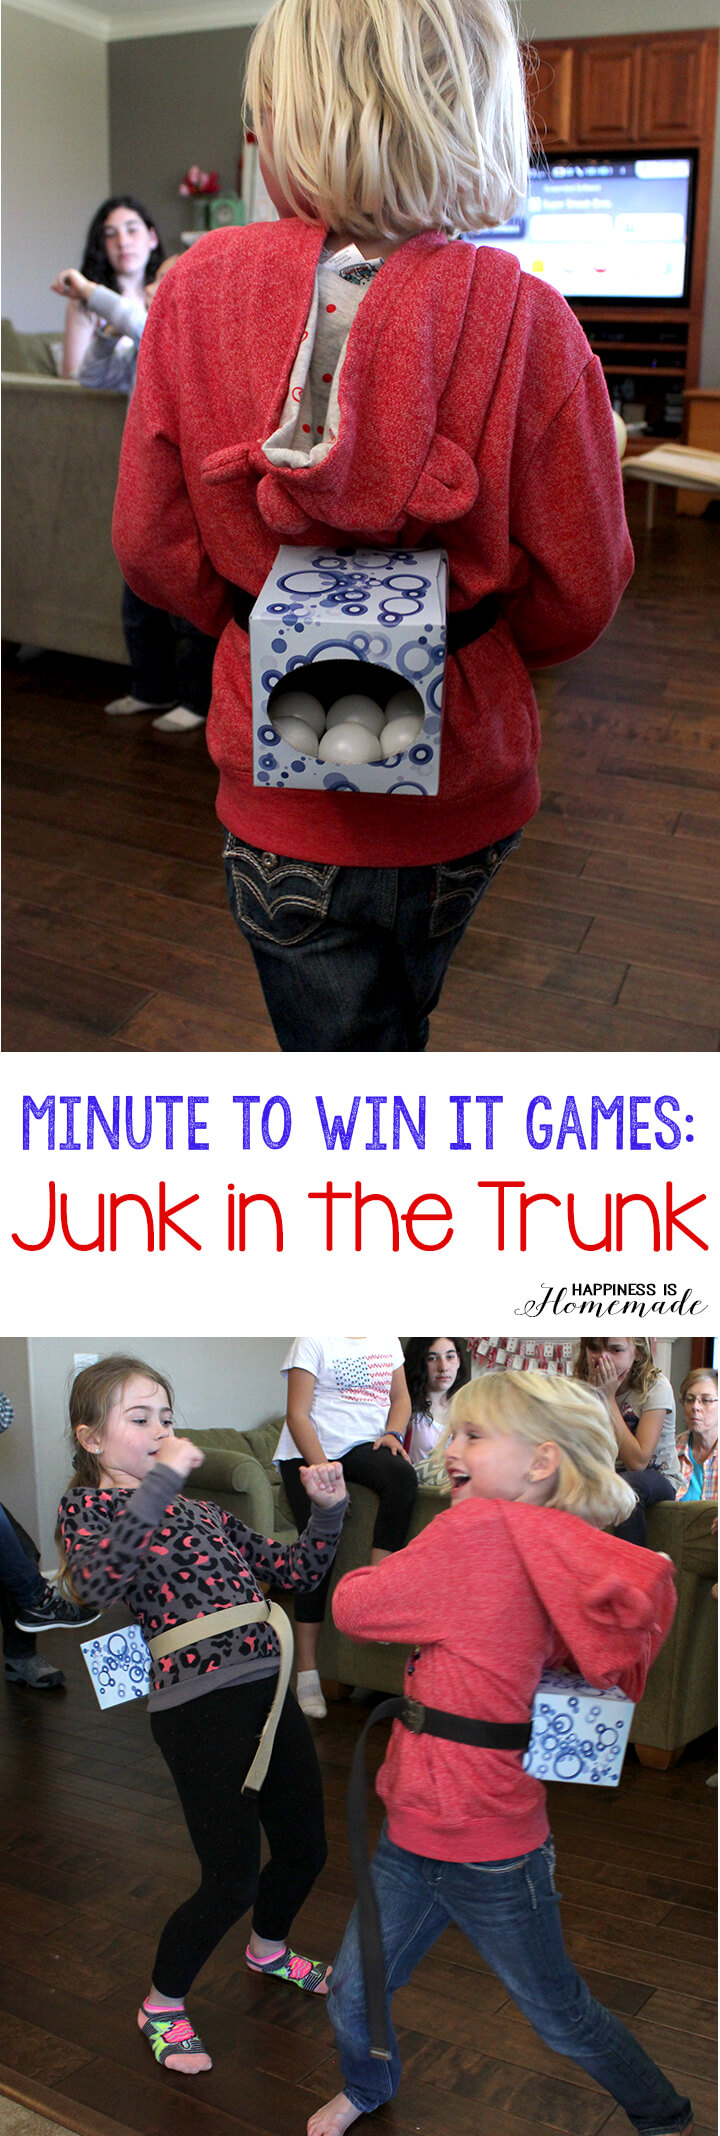 10 Awesome Minute to Win It Party Games - Happiness is ...